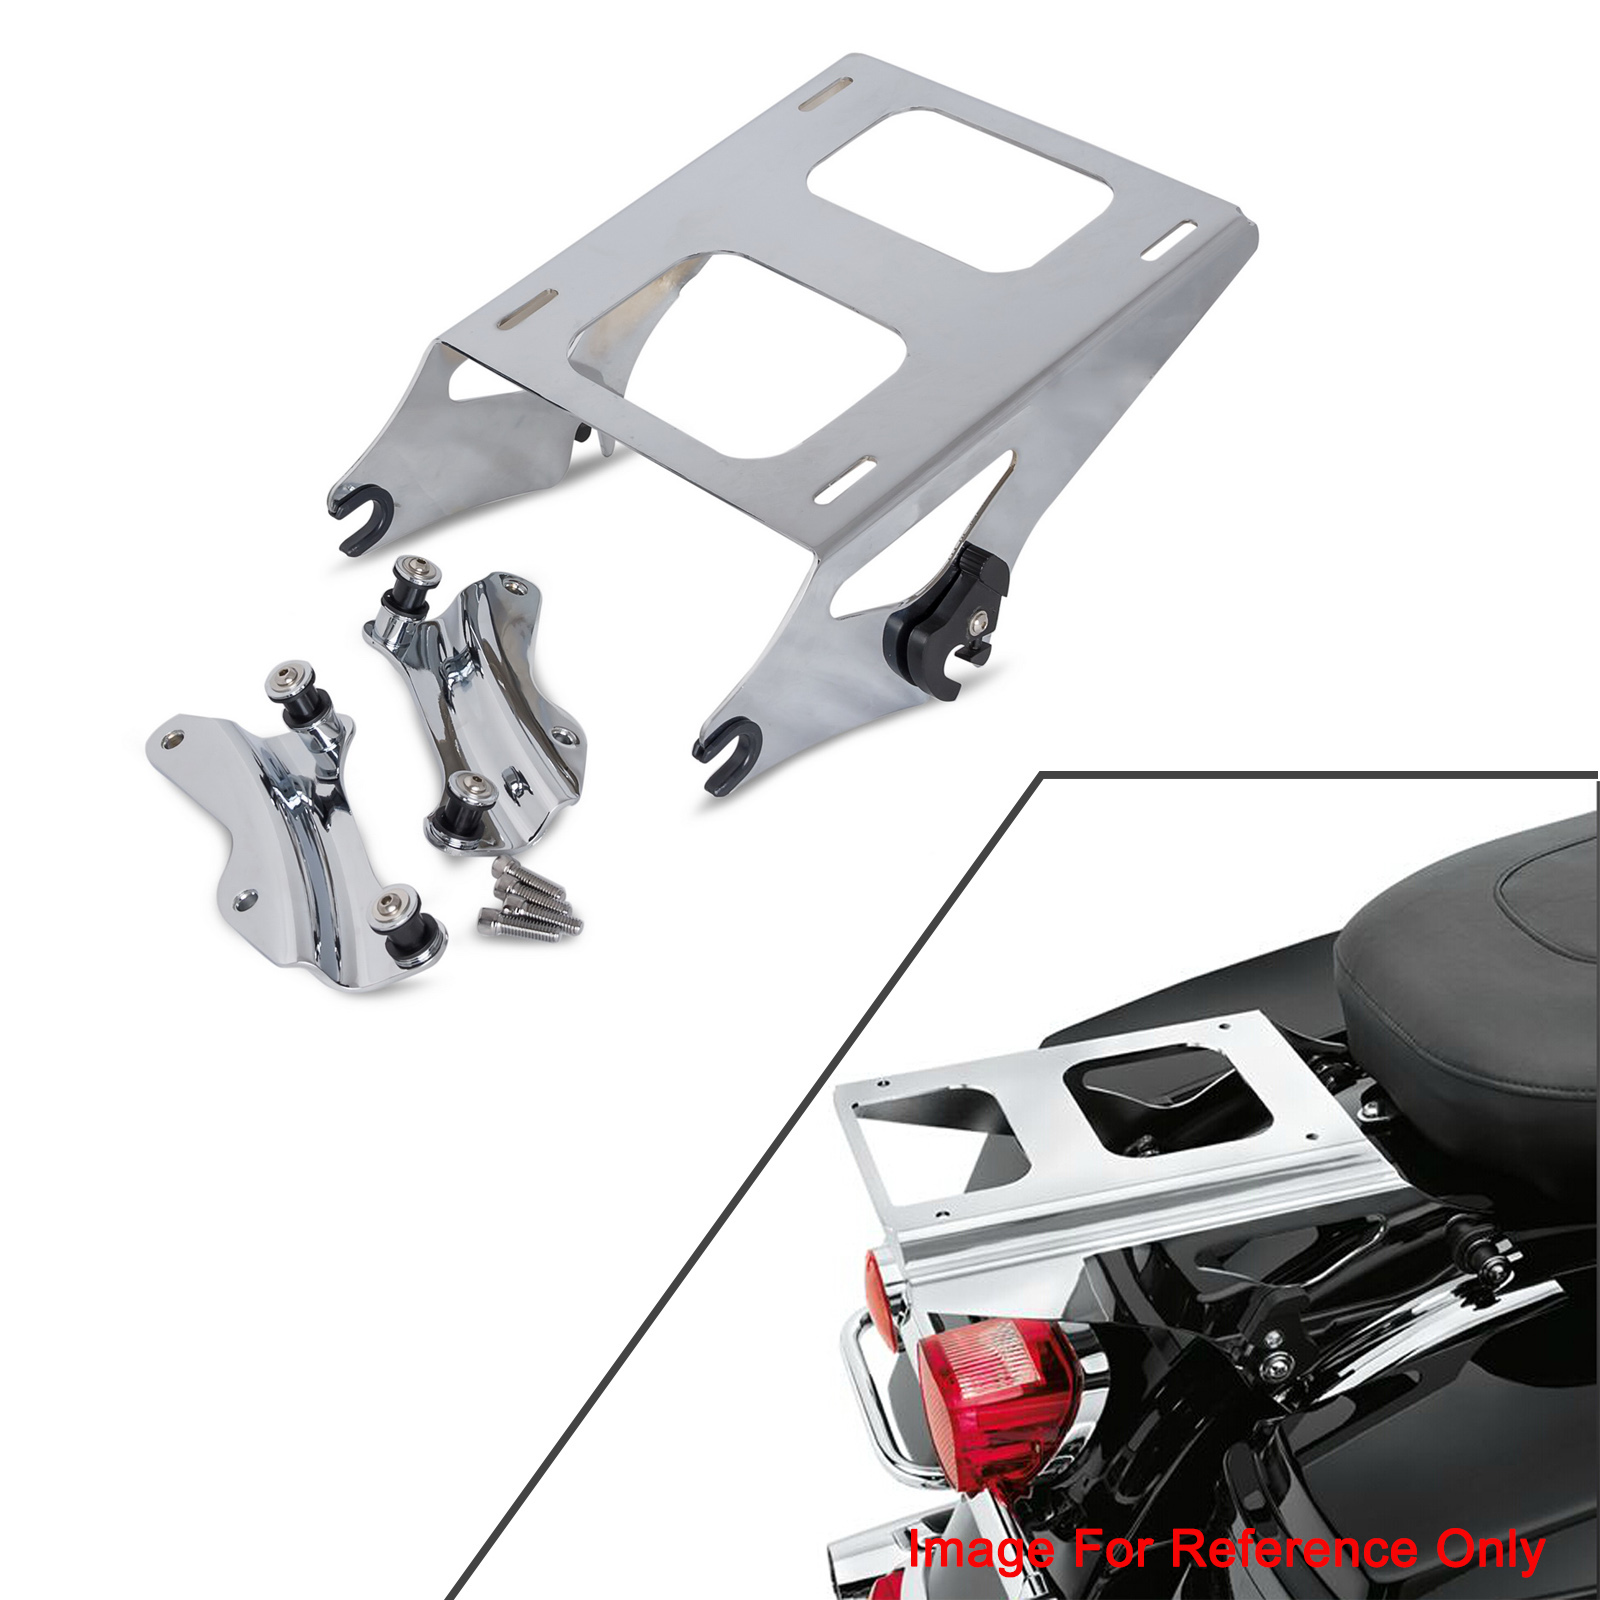 New Motorcycle 2 Up Tour Pak Luggage Rack Amp Docking Kit